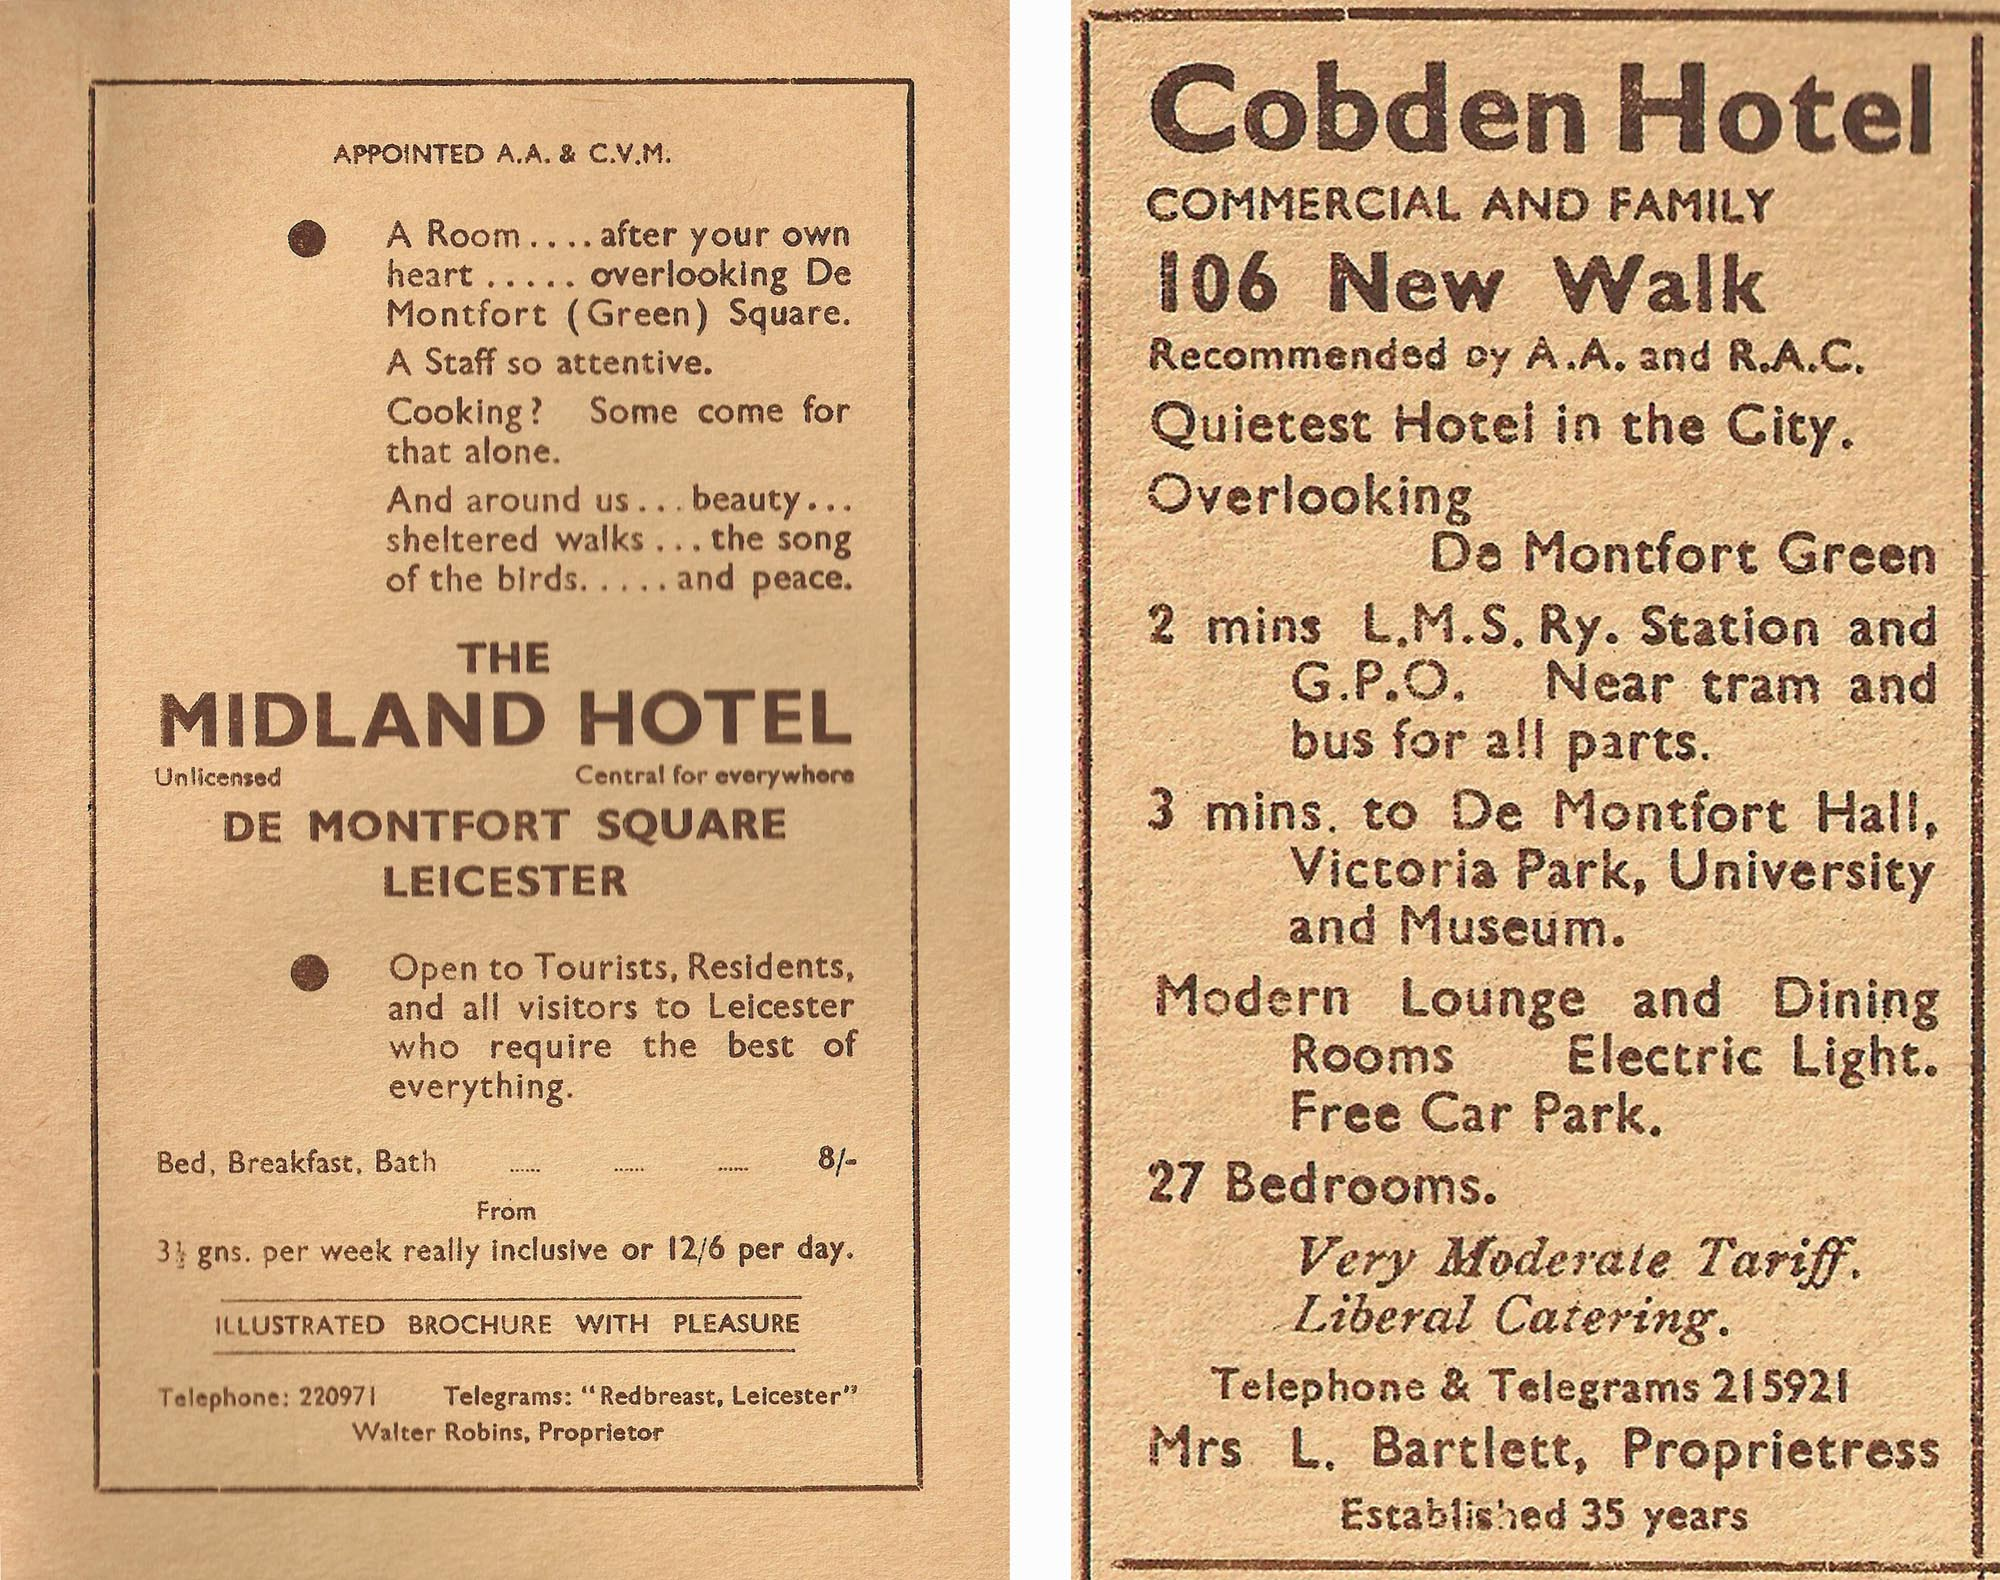 Hotel adverts from a 1930s newspaper -